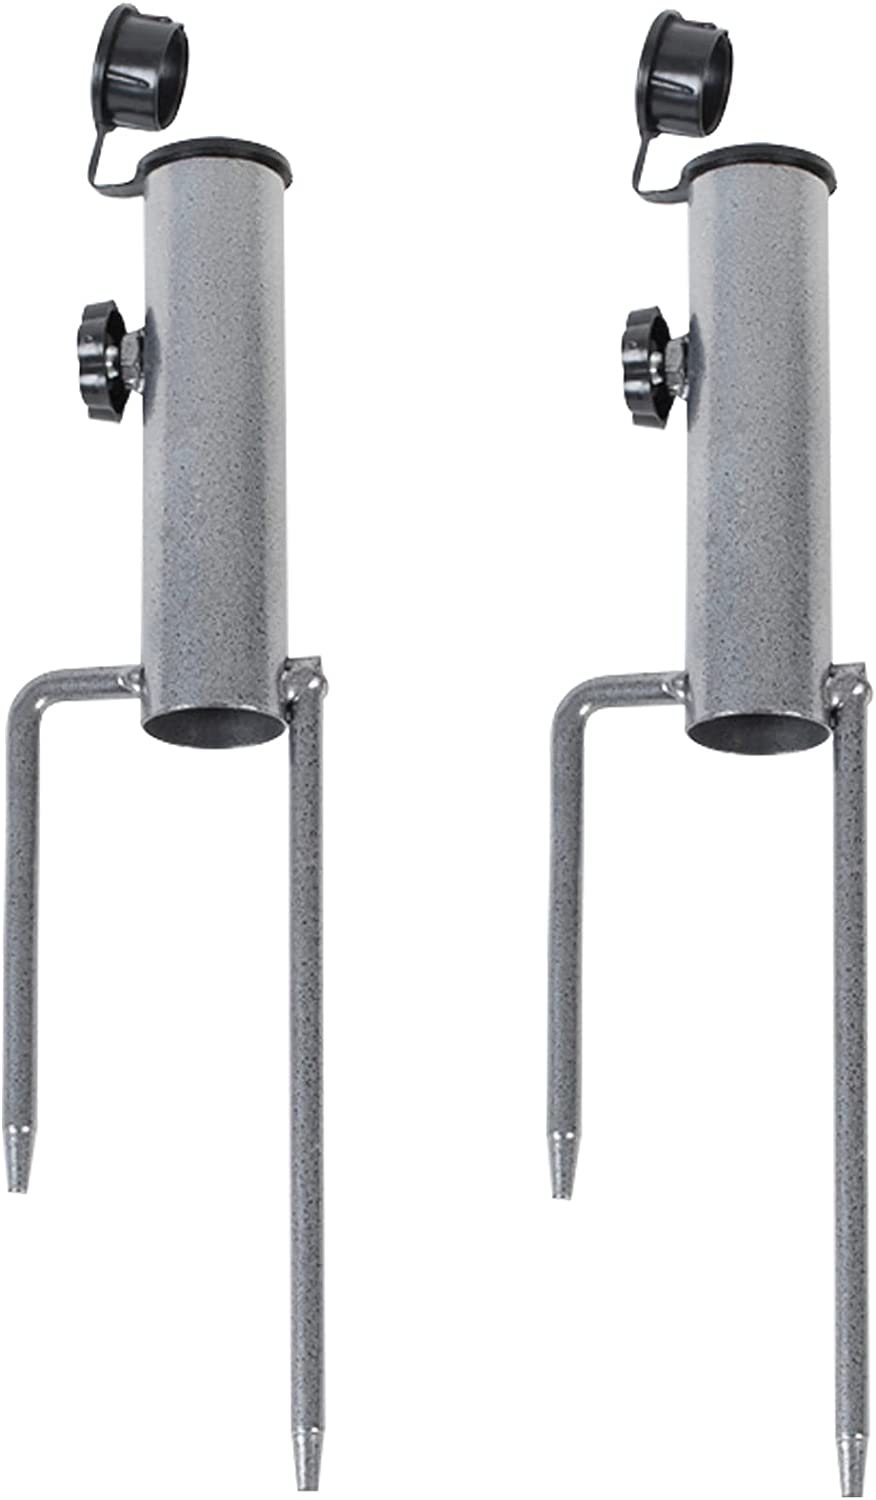 2Pcs Patio Umbrella Steel Stand Beach Lawn Outdoor Max 58% OFF Sand Now on sale